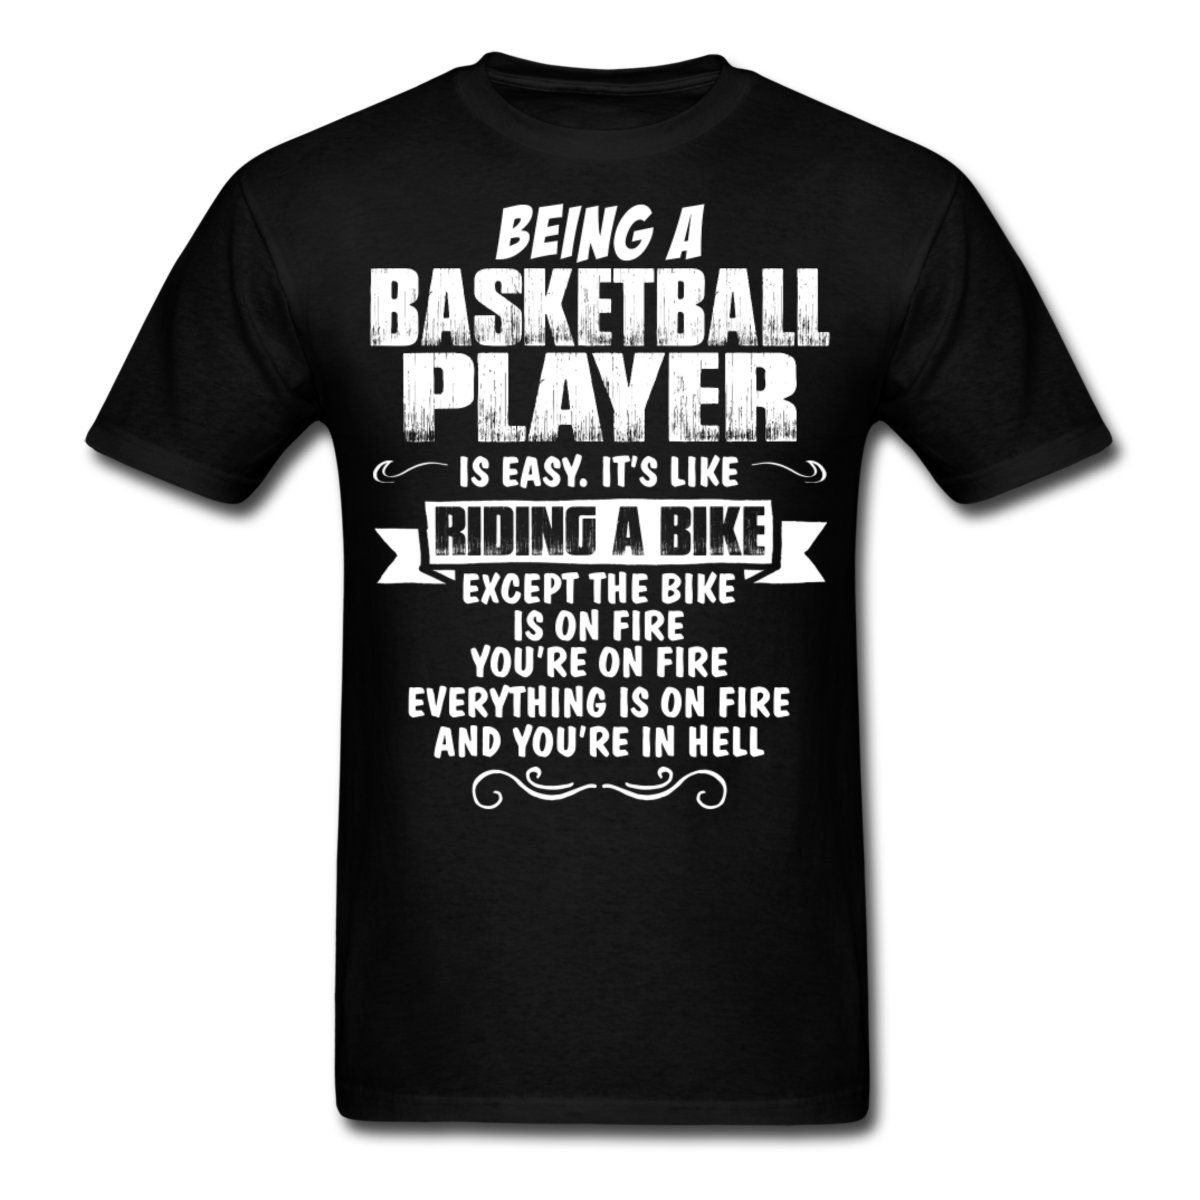 stunning basketball t shirt design ideas pictures decorating - Basketball T Shirt Design Ideas